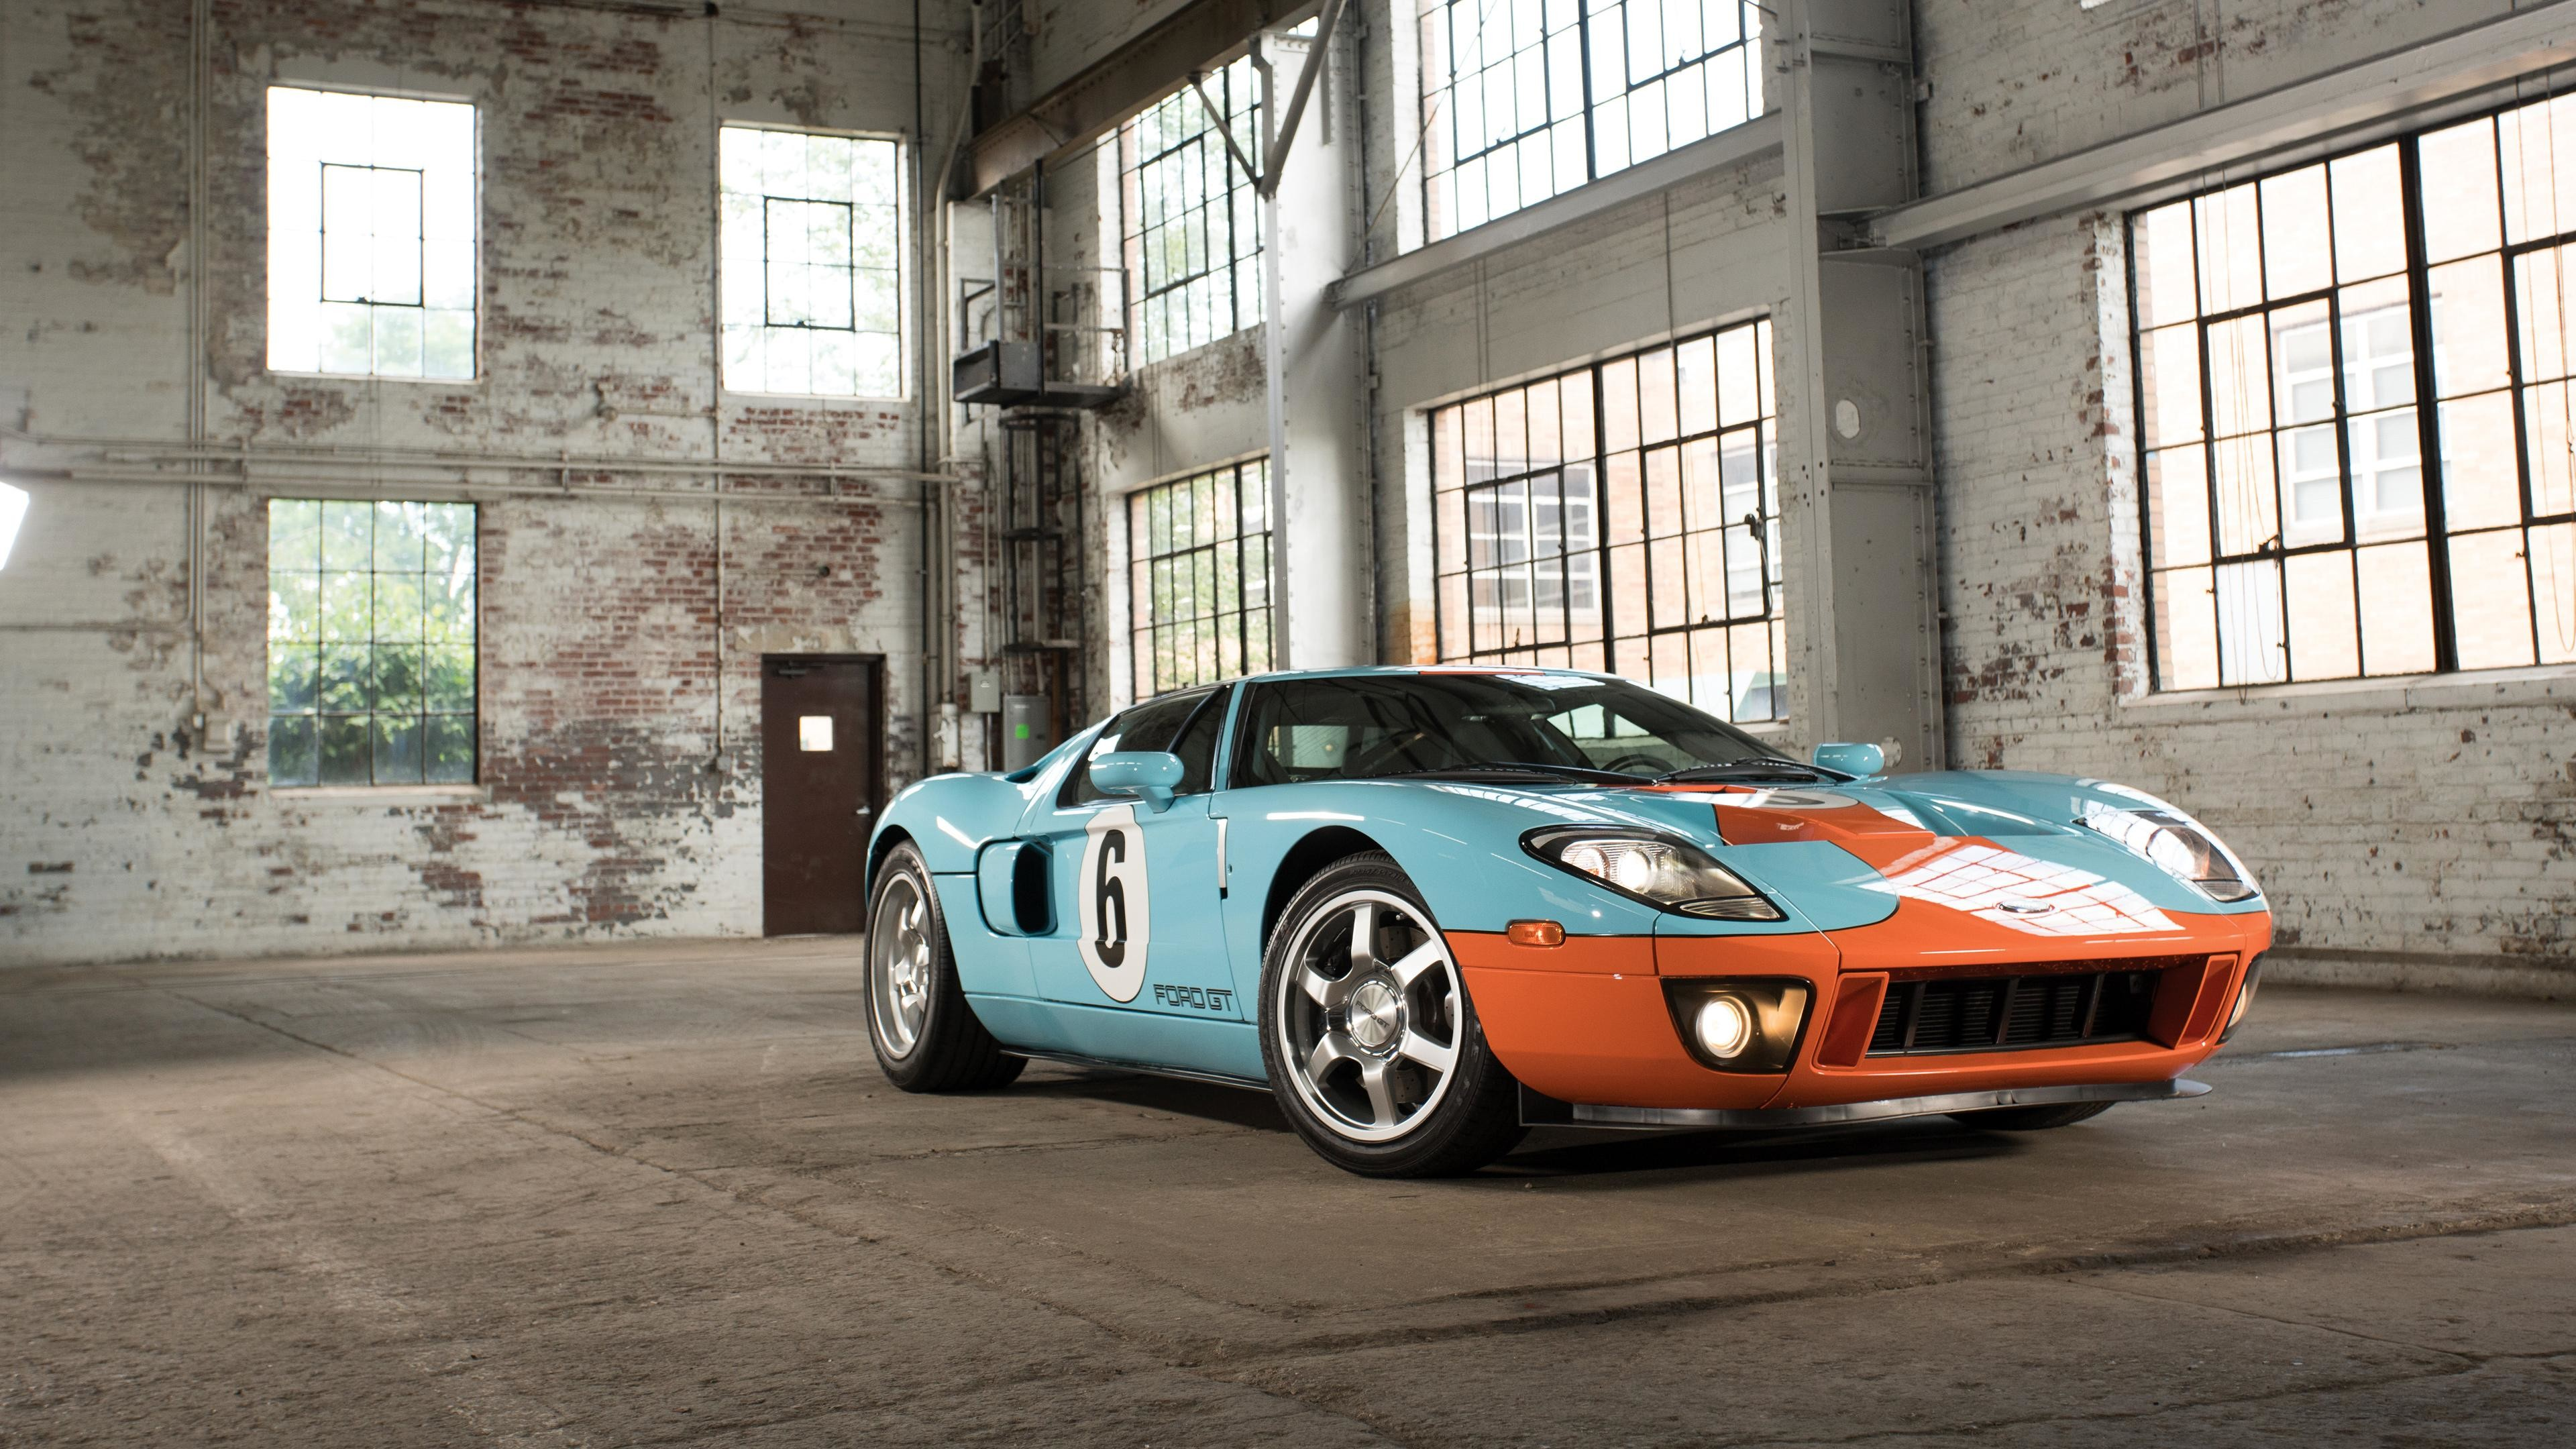 Res: 3840x2160, ford gt40 wallpaper #704559